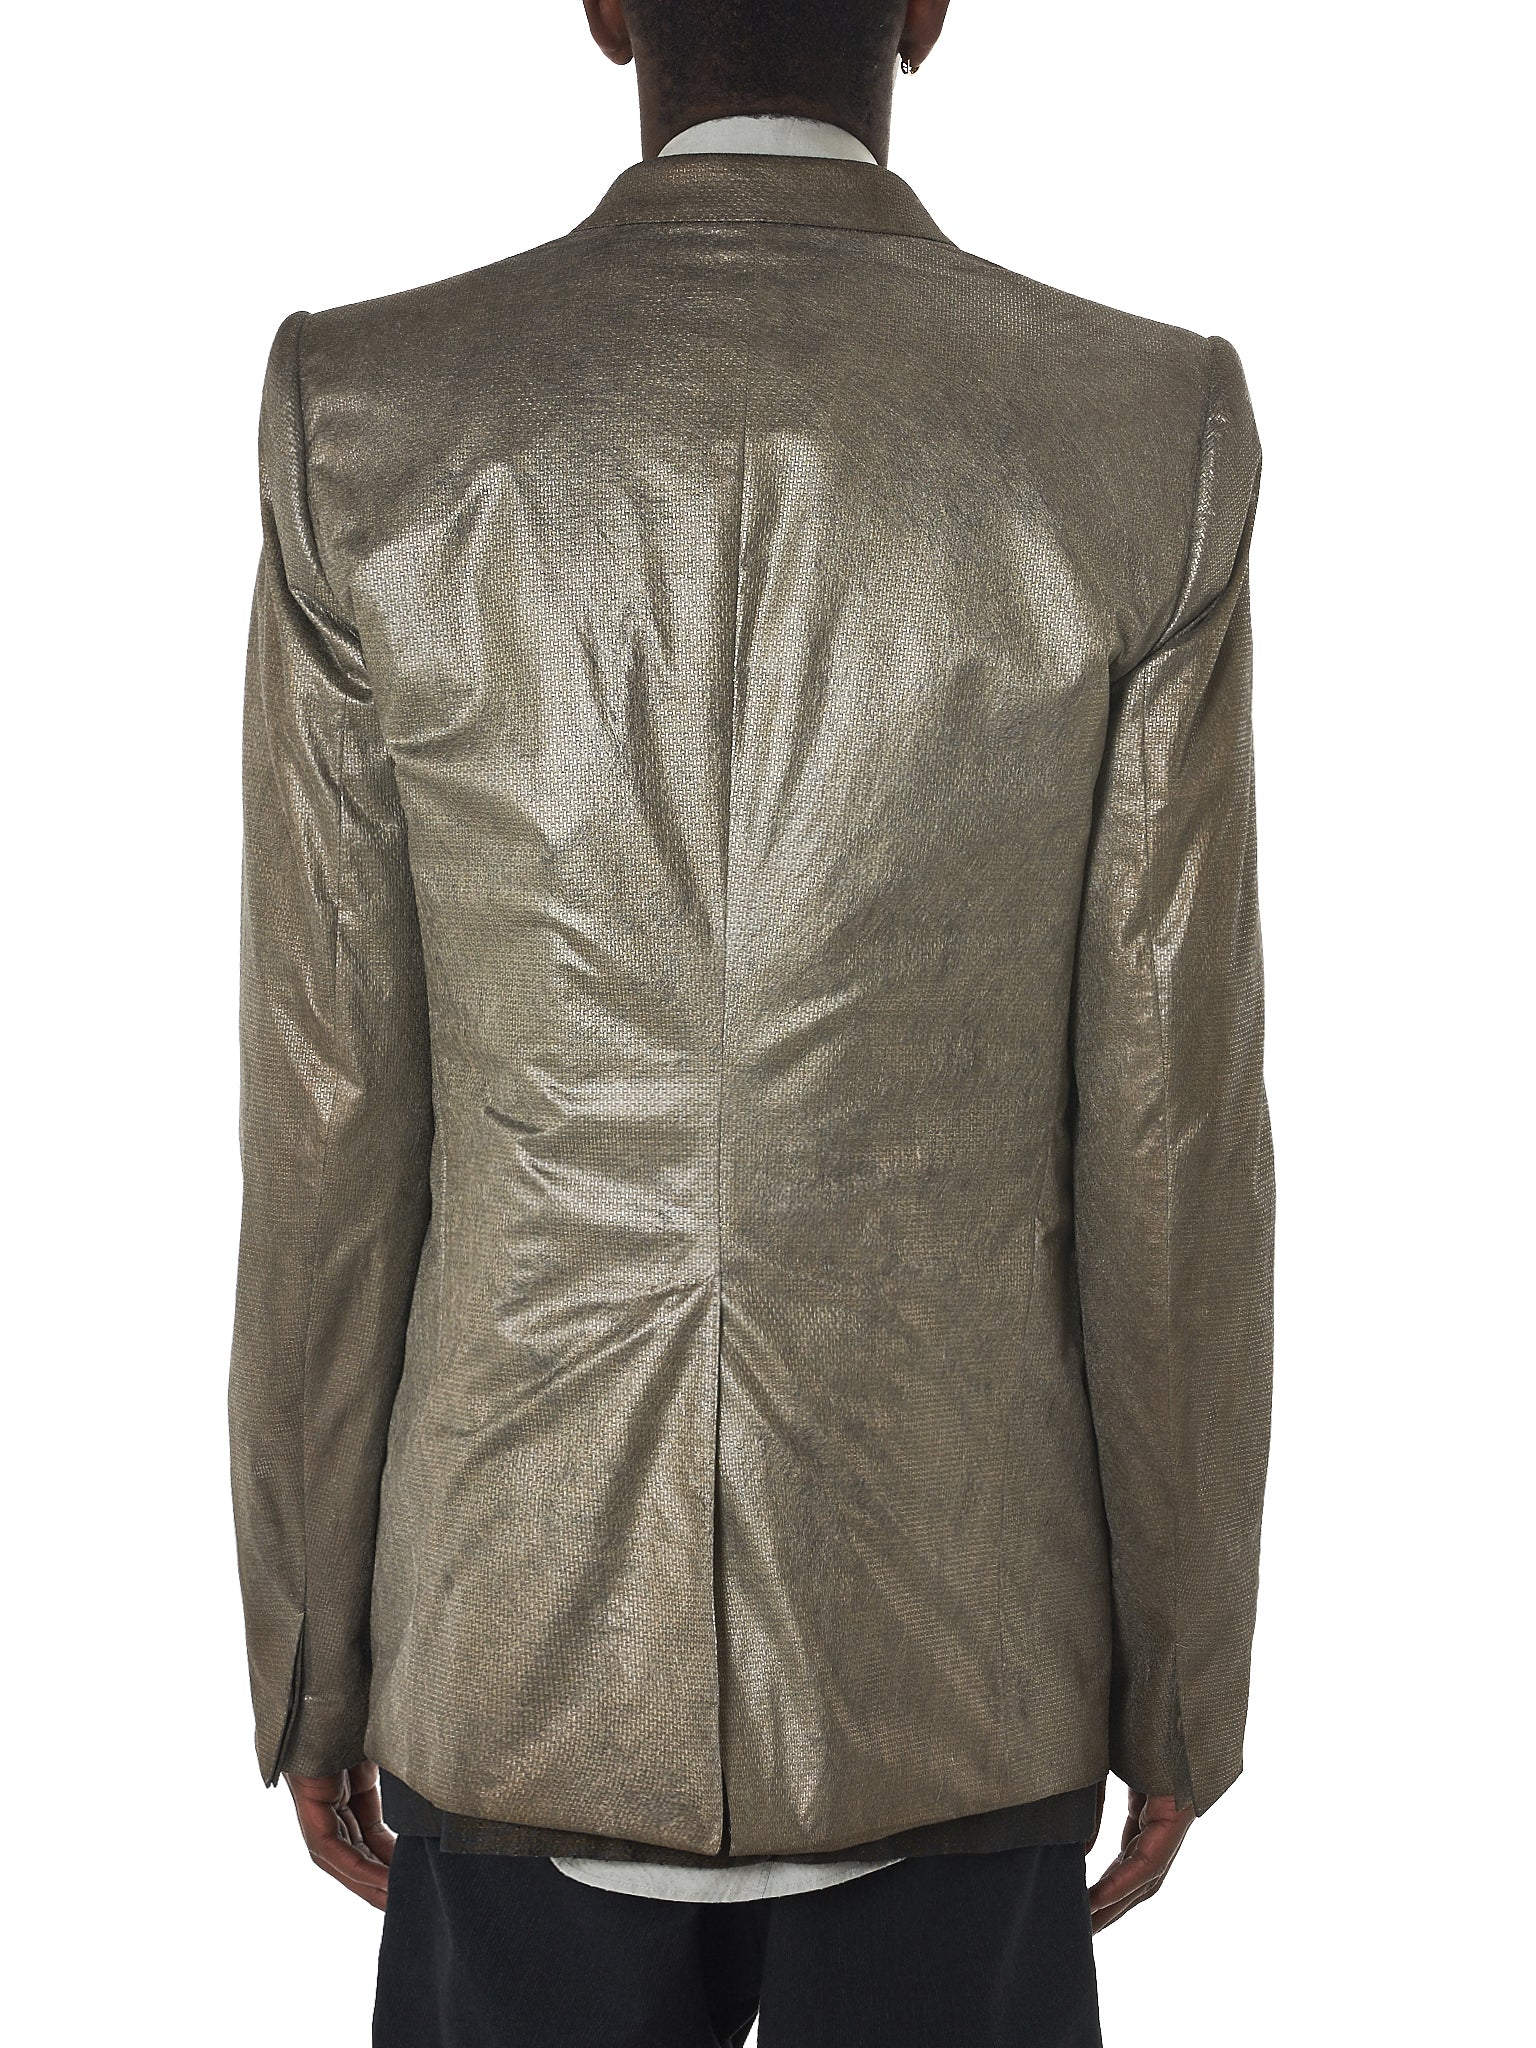 Deepti Oxidized Jacket - Hlorenzo Back